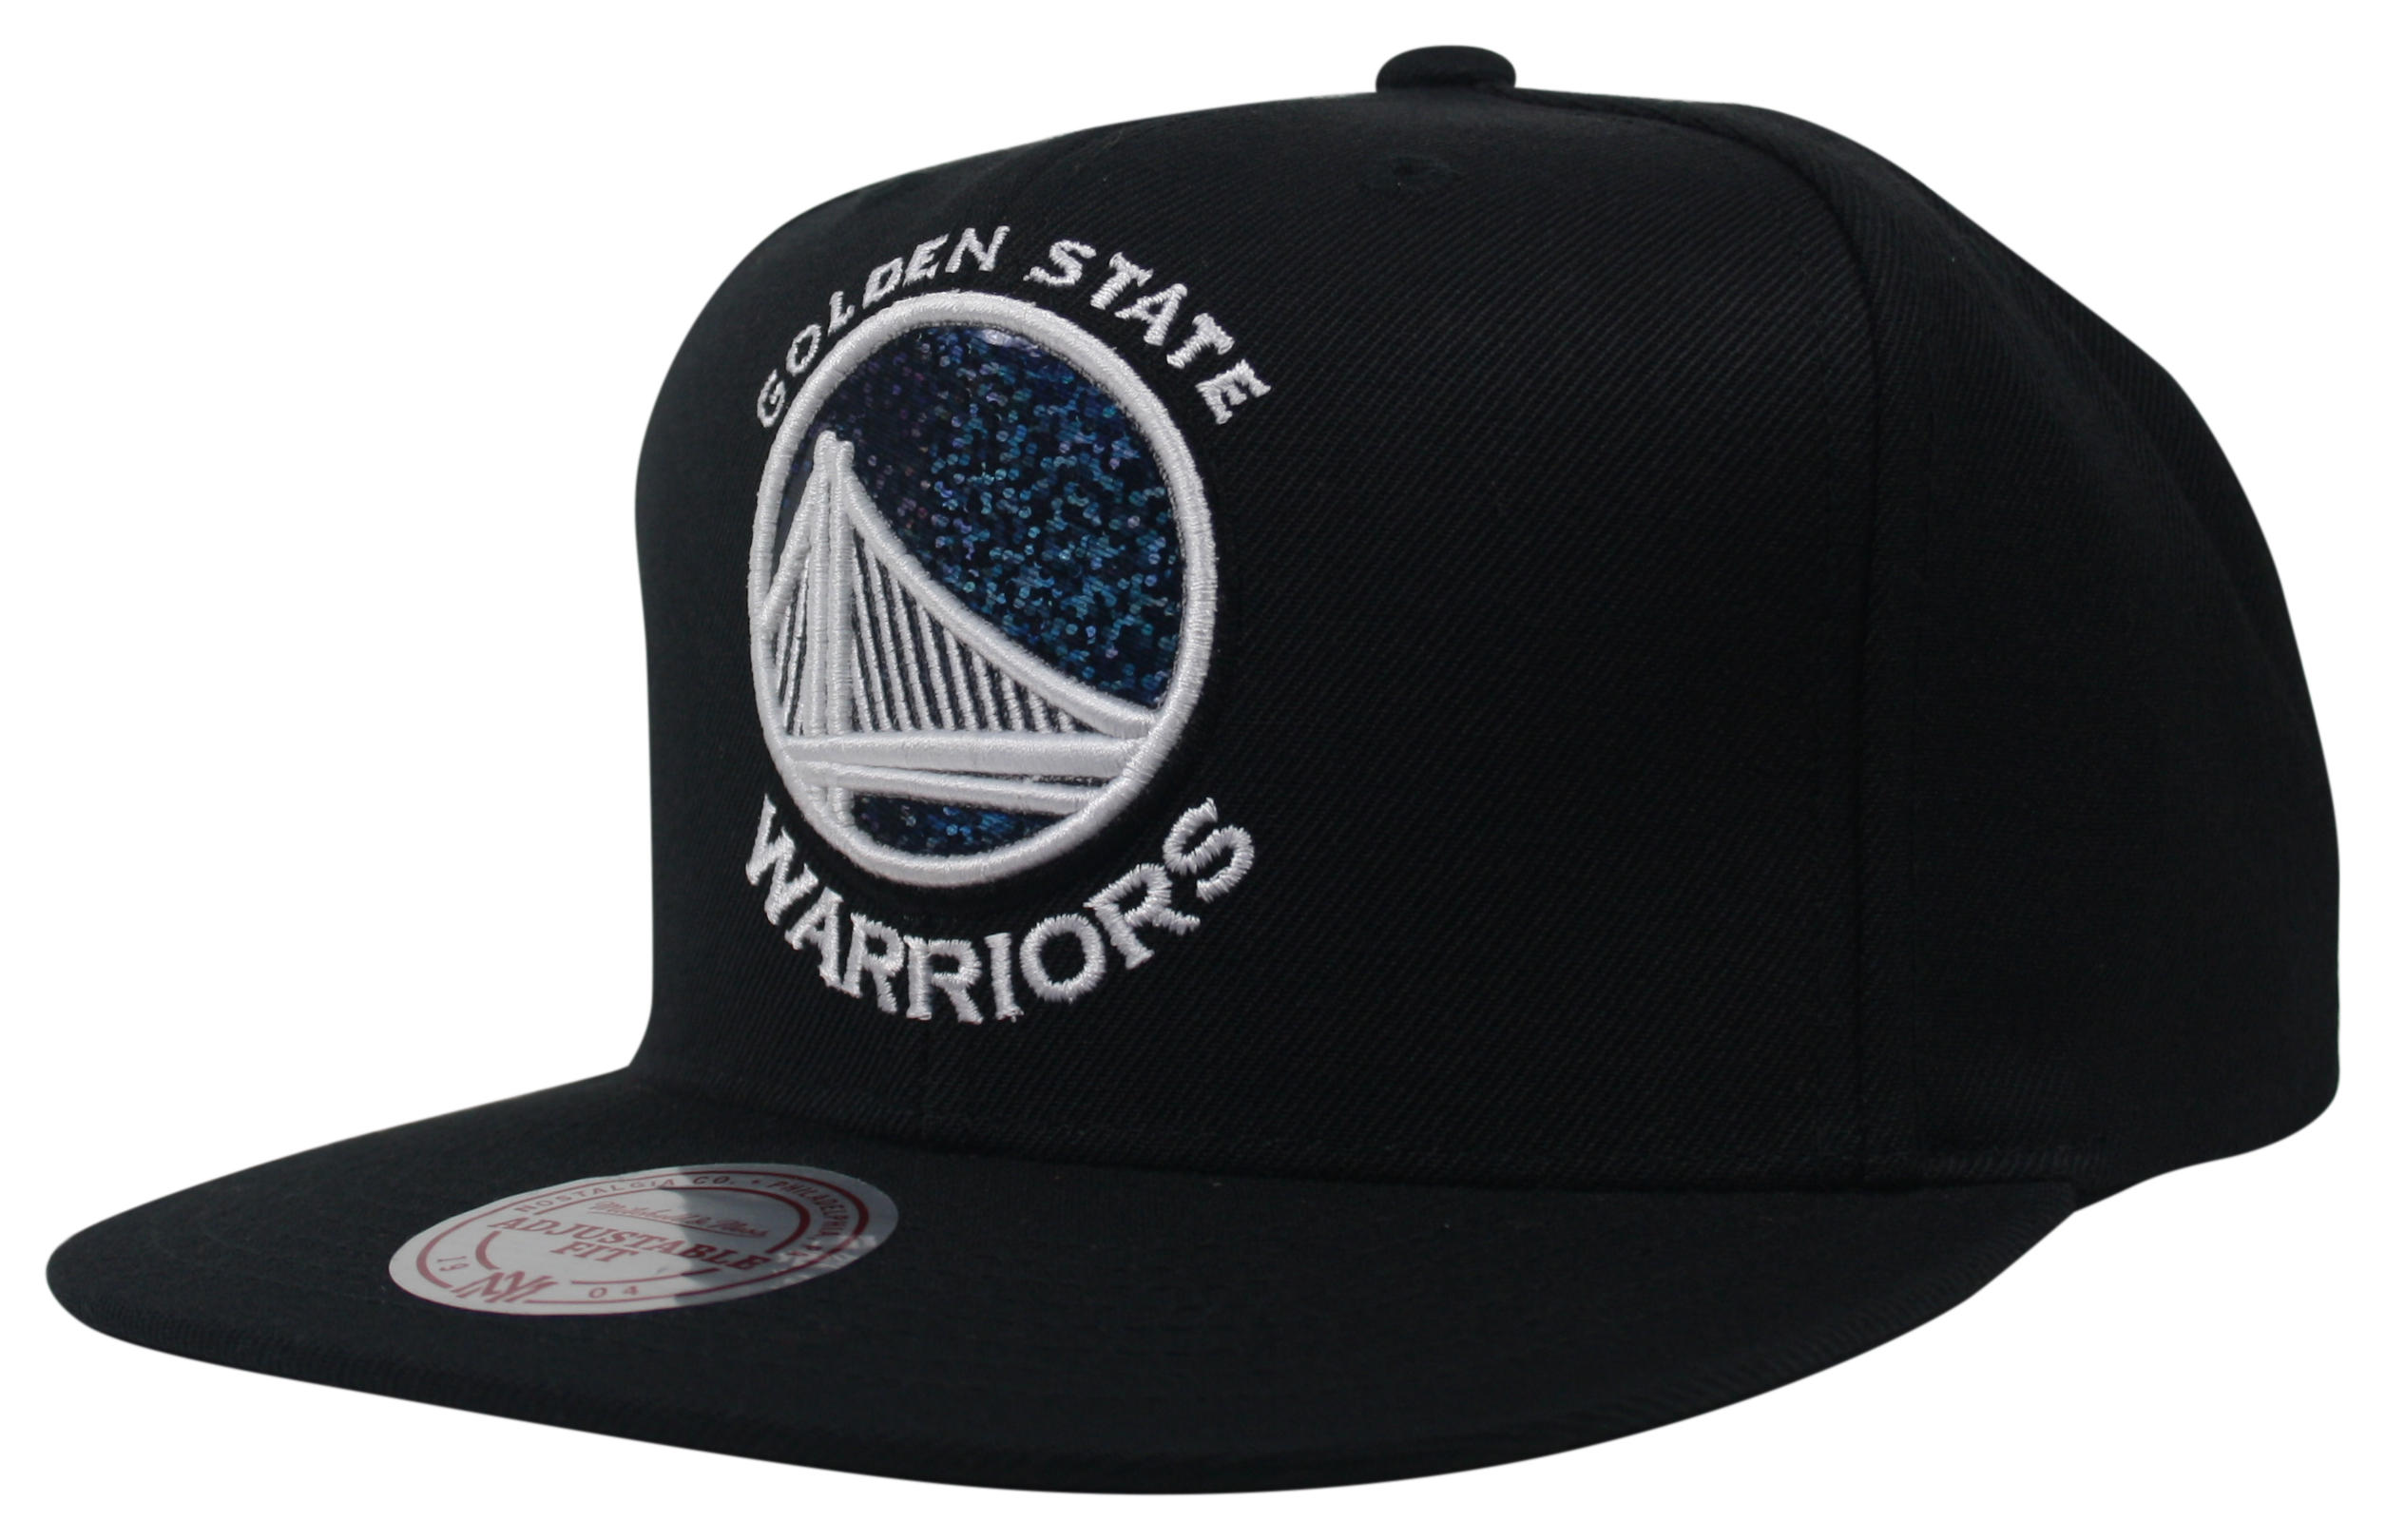 fdc95b6f315c1 Dark Hologram Snapback Golden State Warriors